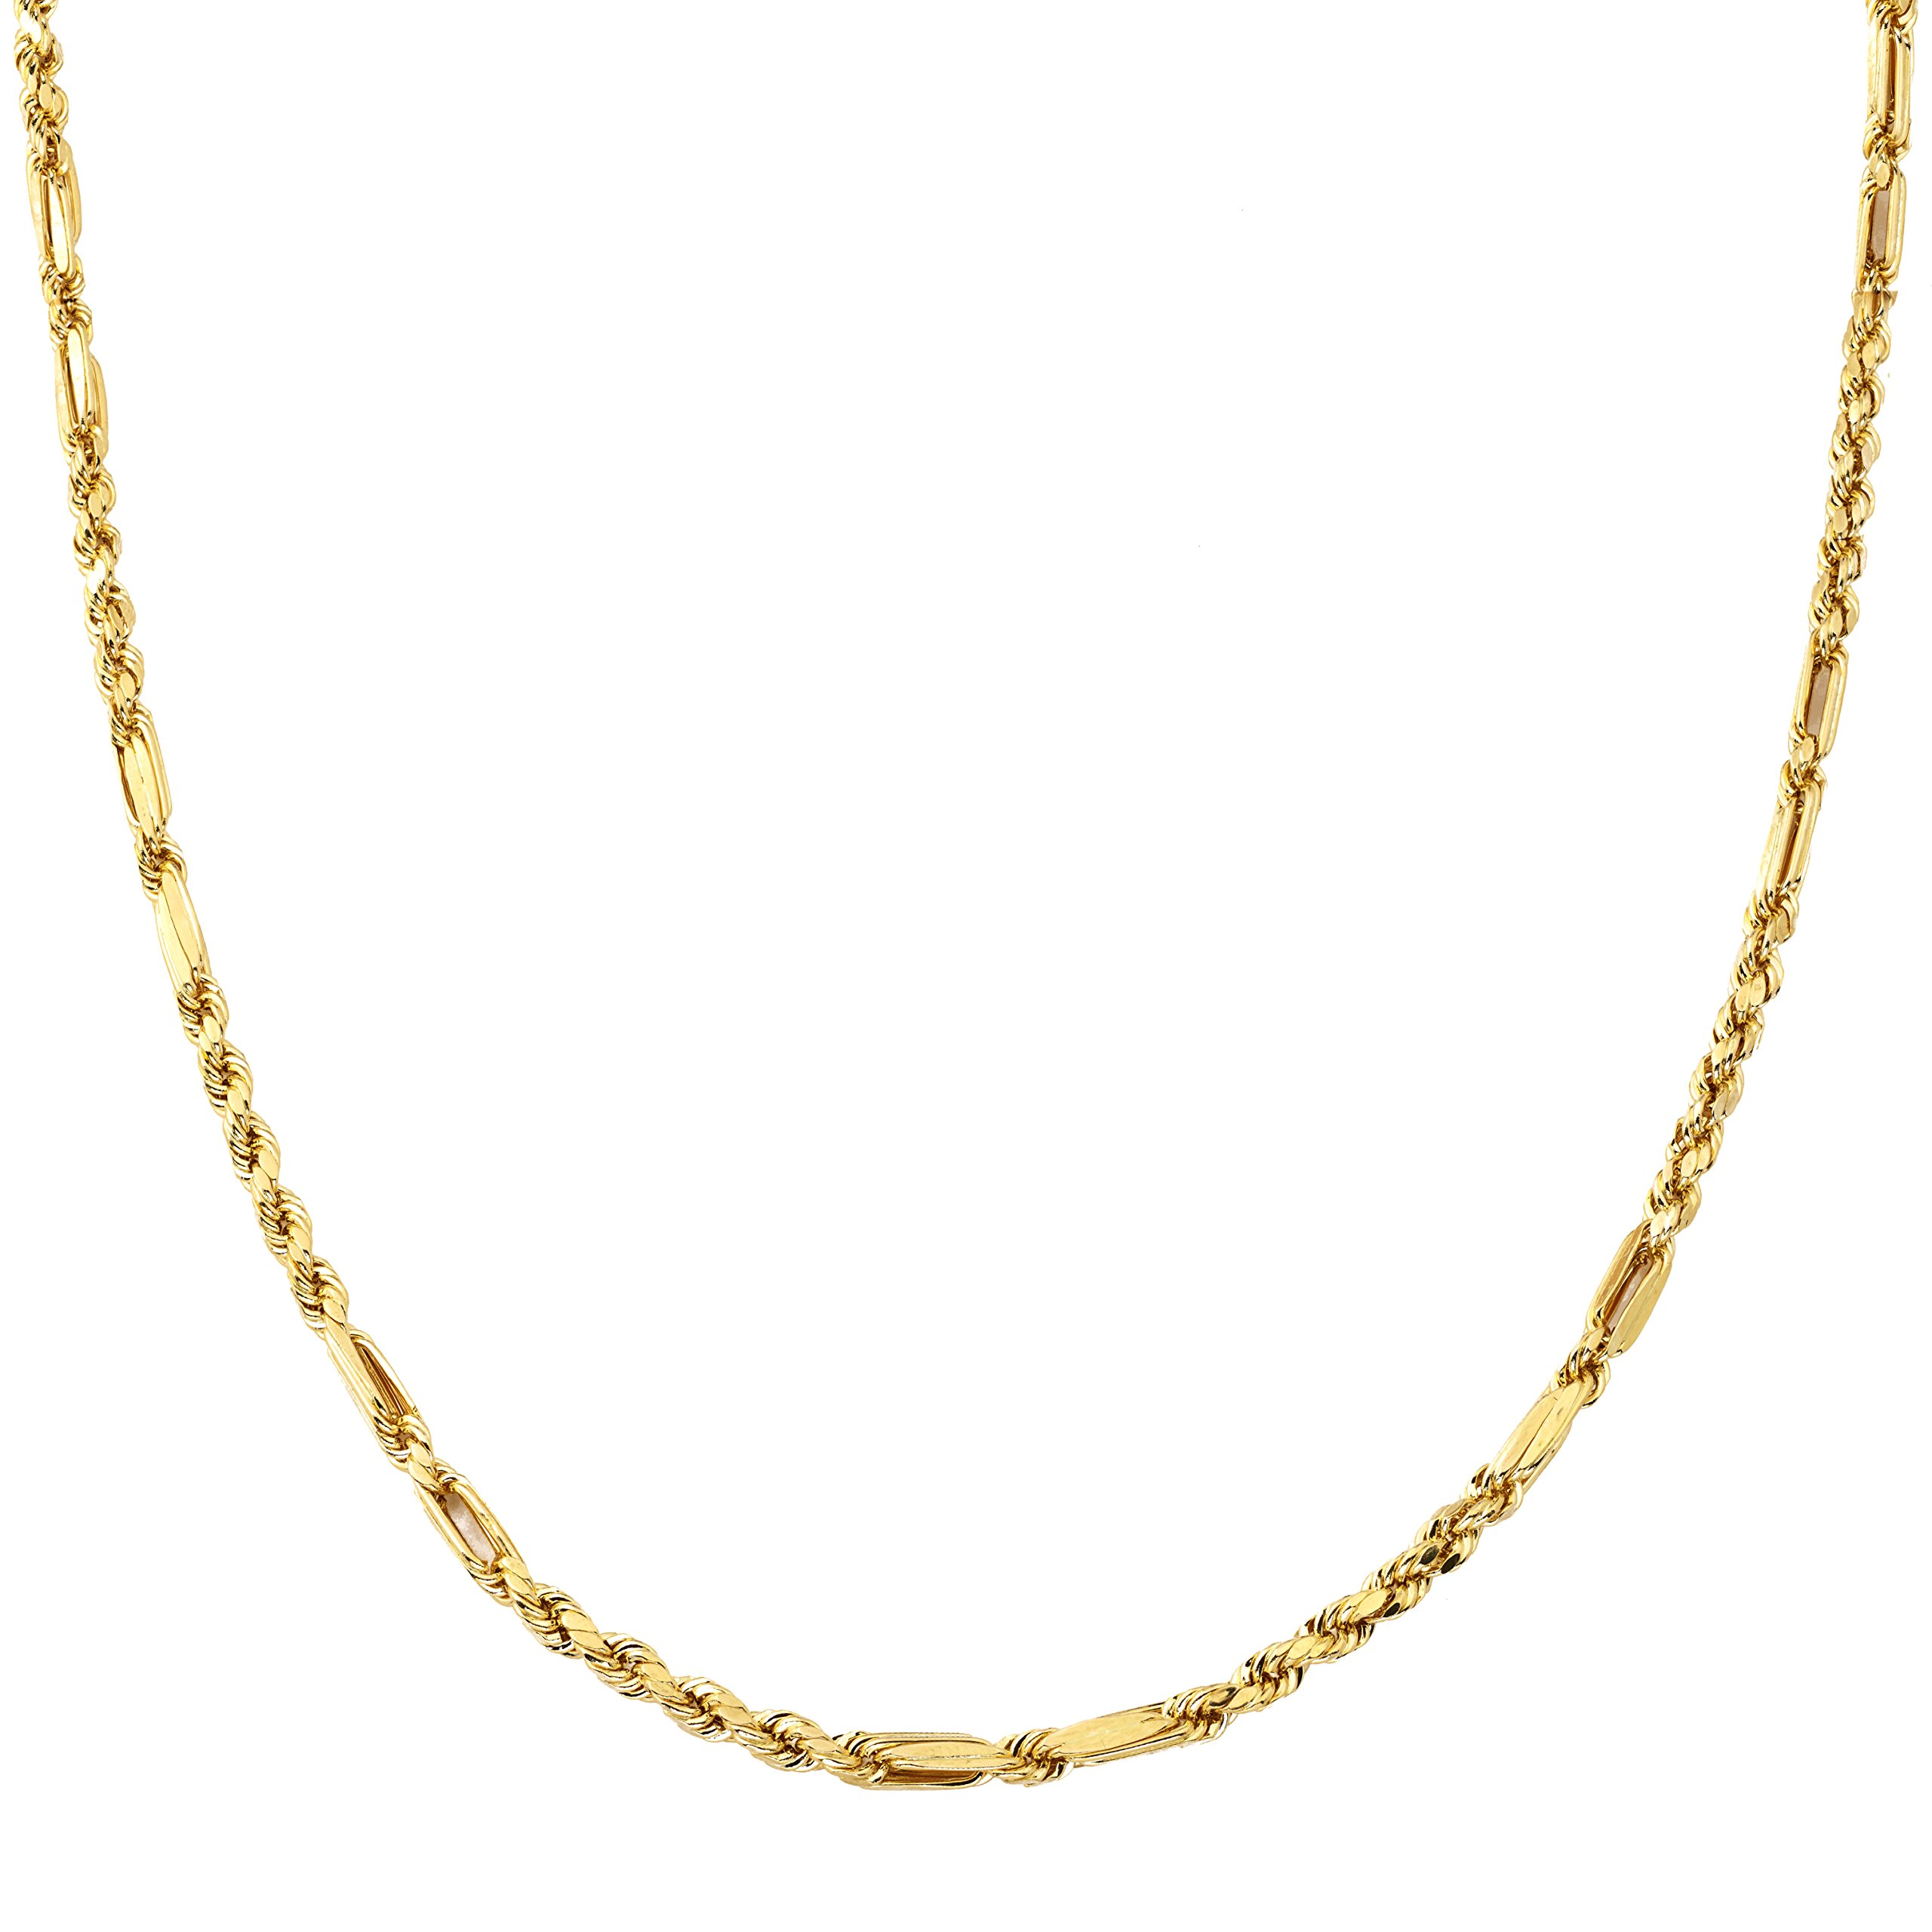 LoveBling 10K Yellow Gold 4mm Diamond Cut FigaRope Milano Chain Necklace with Lobster Lock (24'') by LOVEBLING (Image #2)